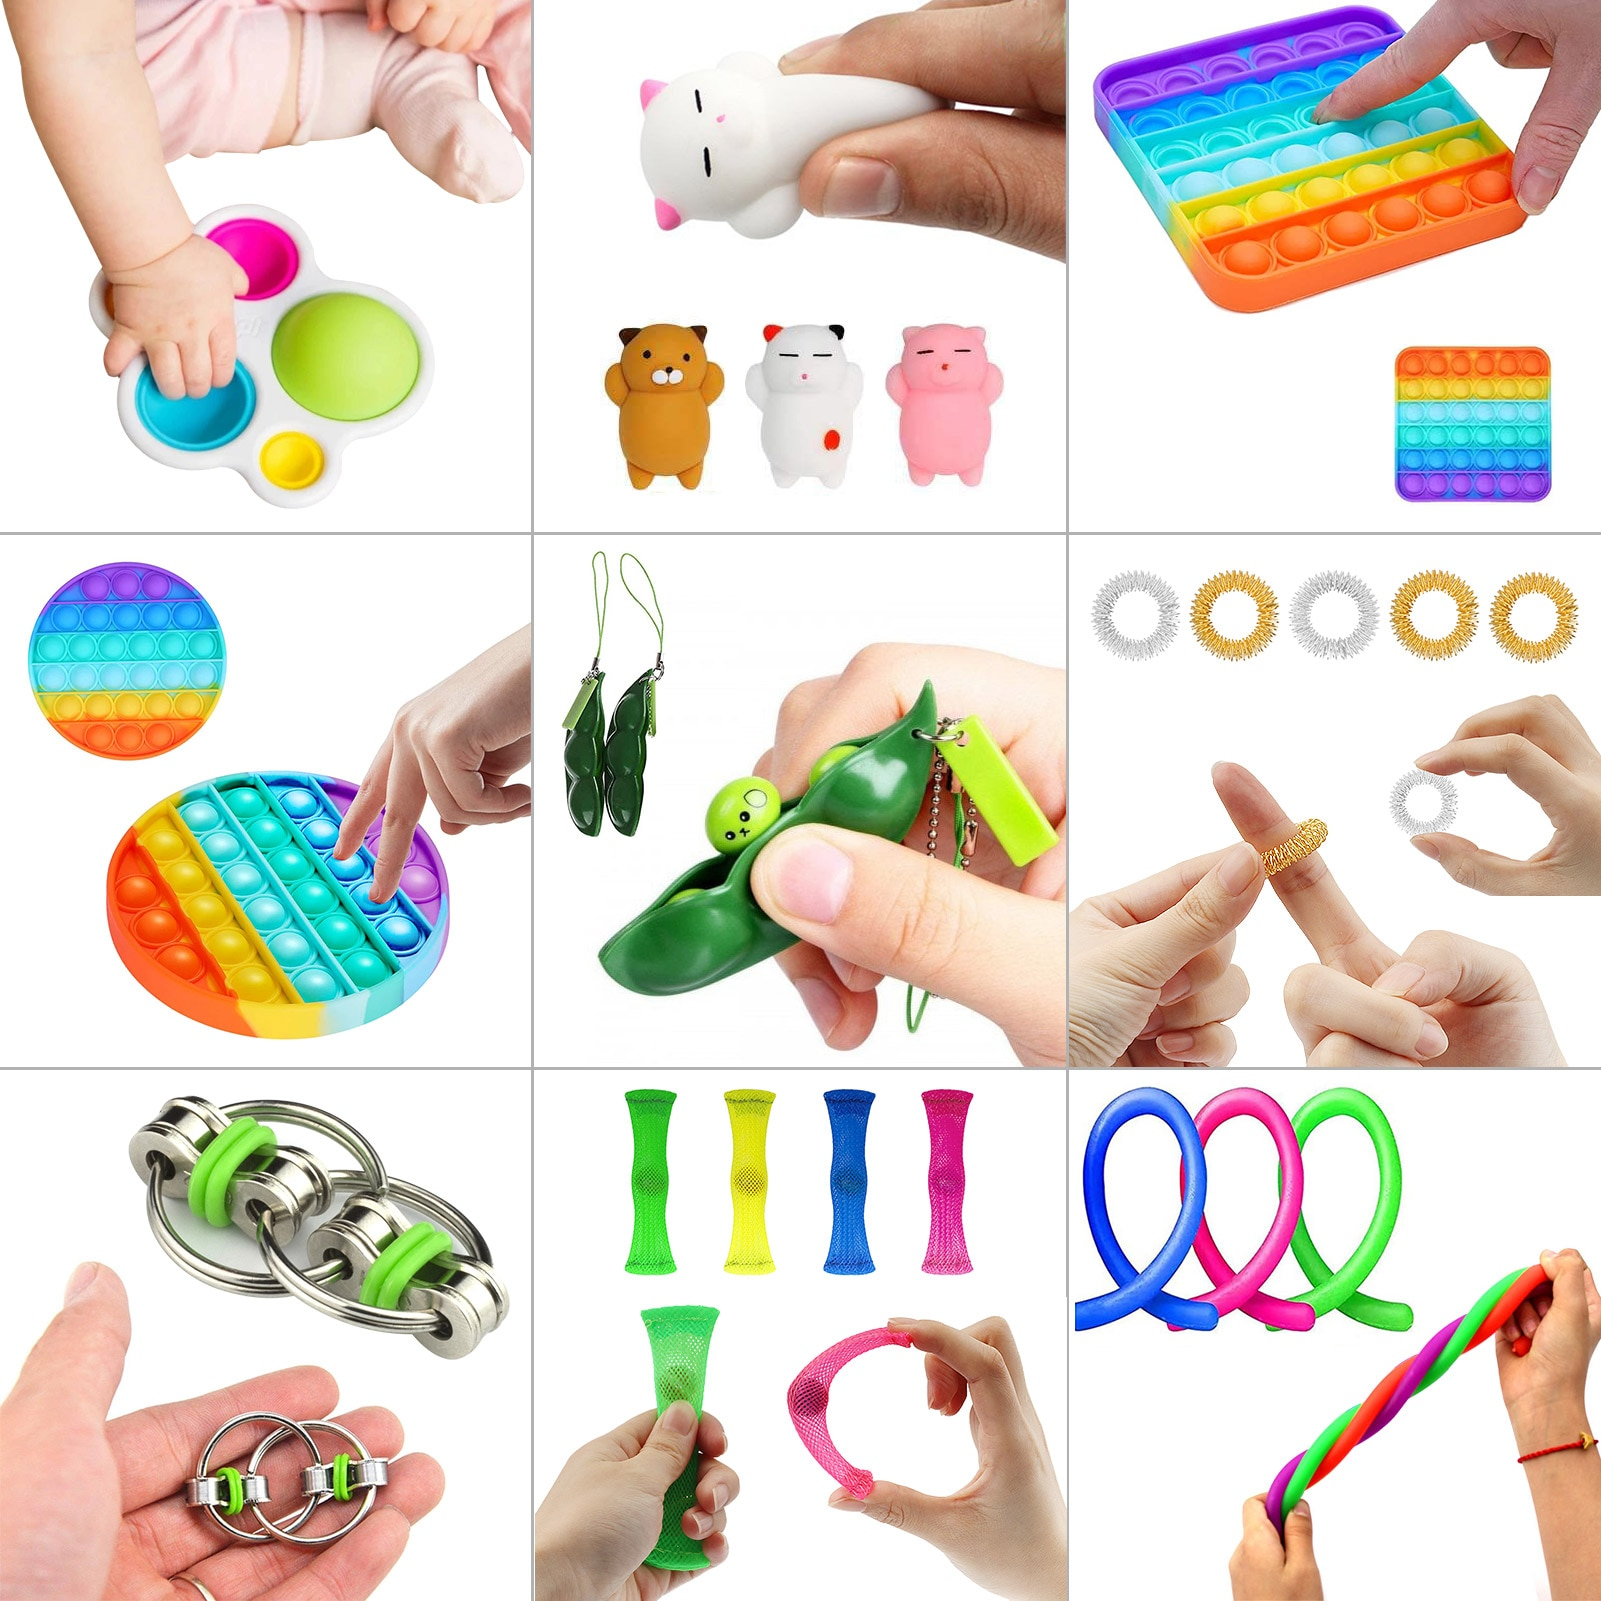 23 IN 1 Fidget Toys Pops it Sensory Antistress Toy Pack Squishy Squishmallow Decompression Stress Reliver Toy For Adults Kids enlarge